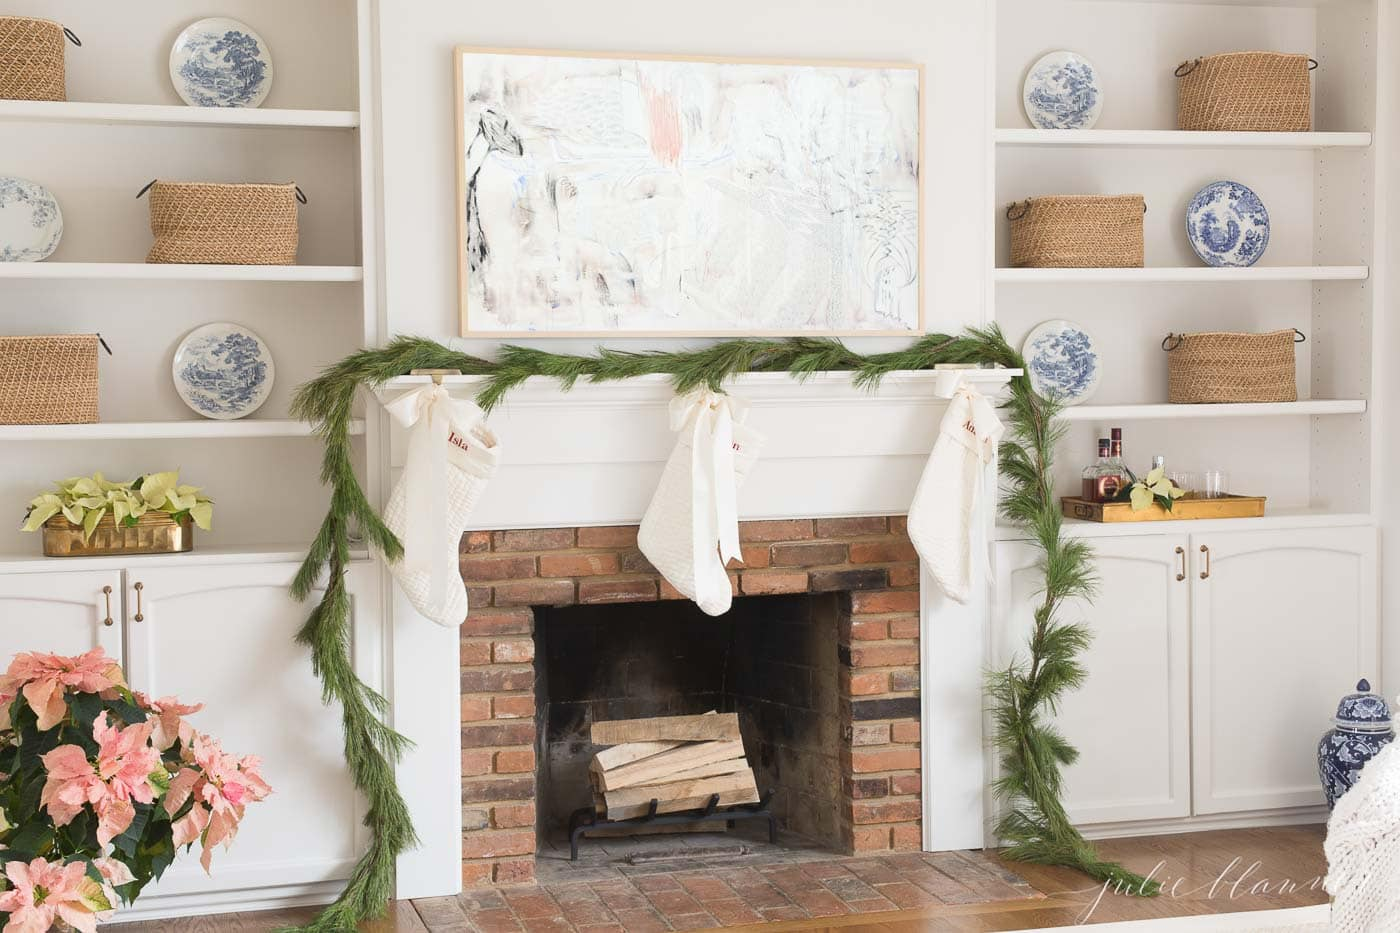 fresh pine garland on a fireplace mantel in a white living room.